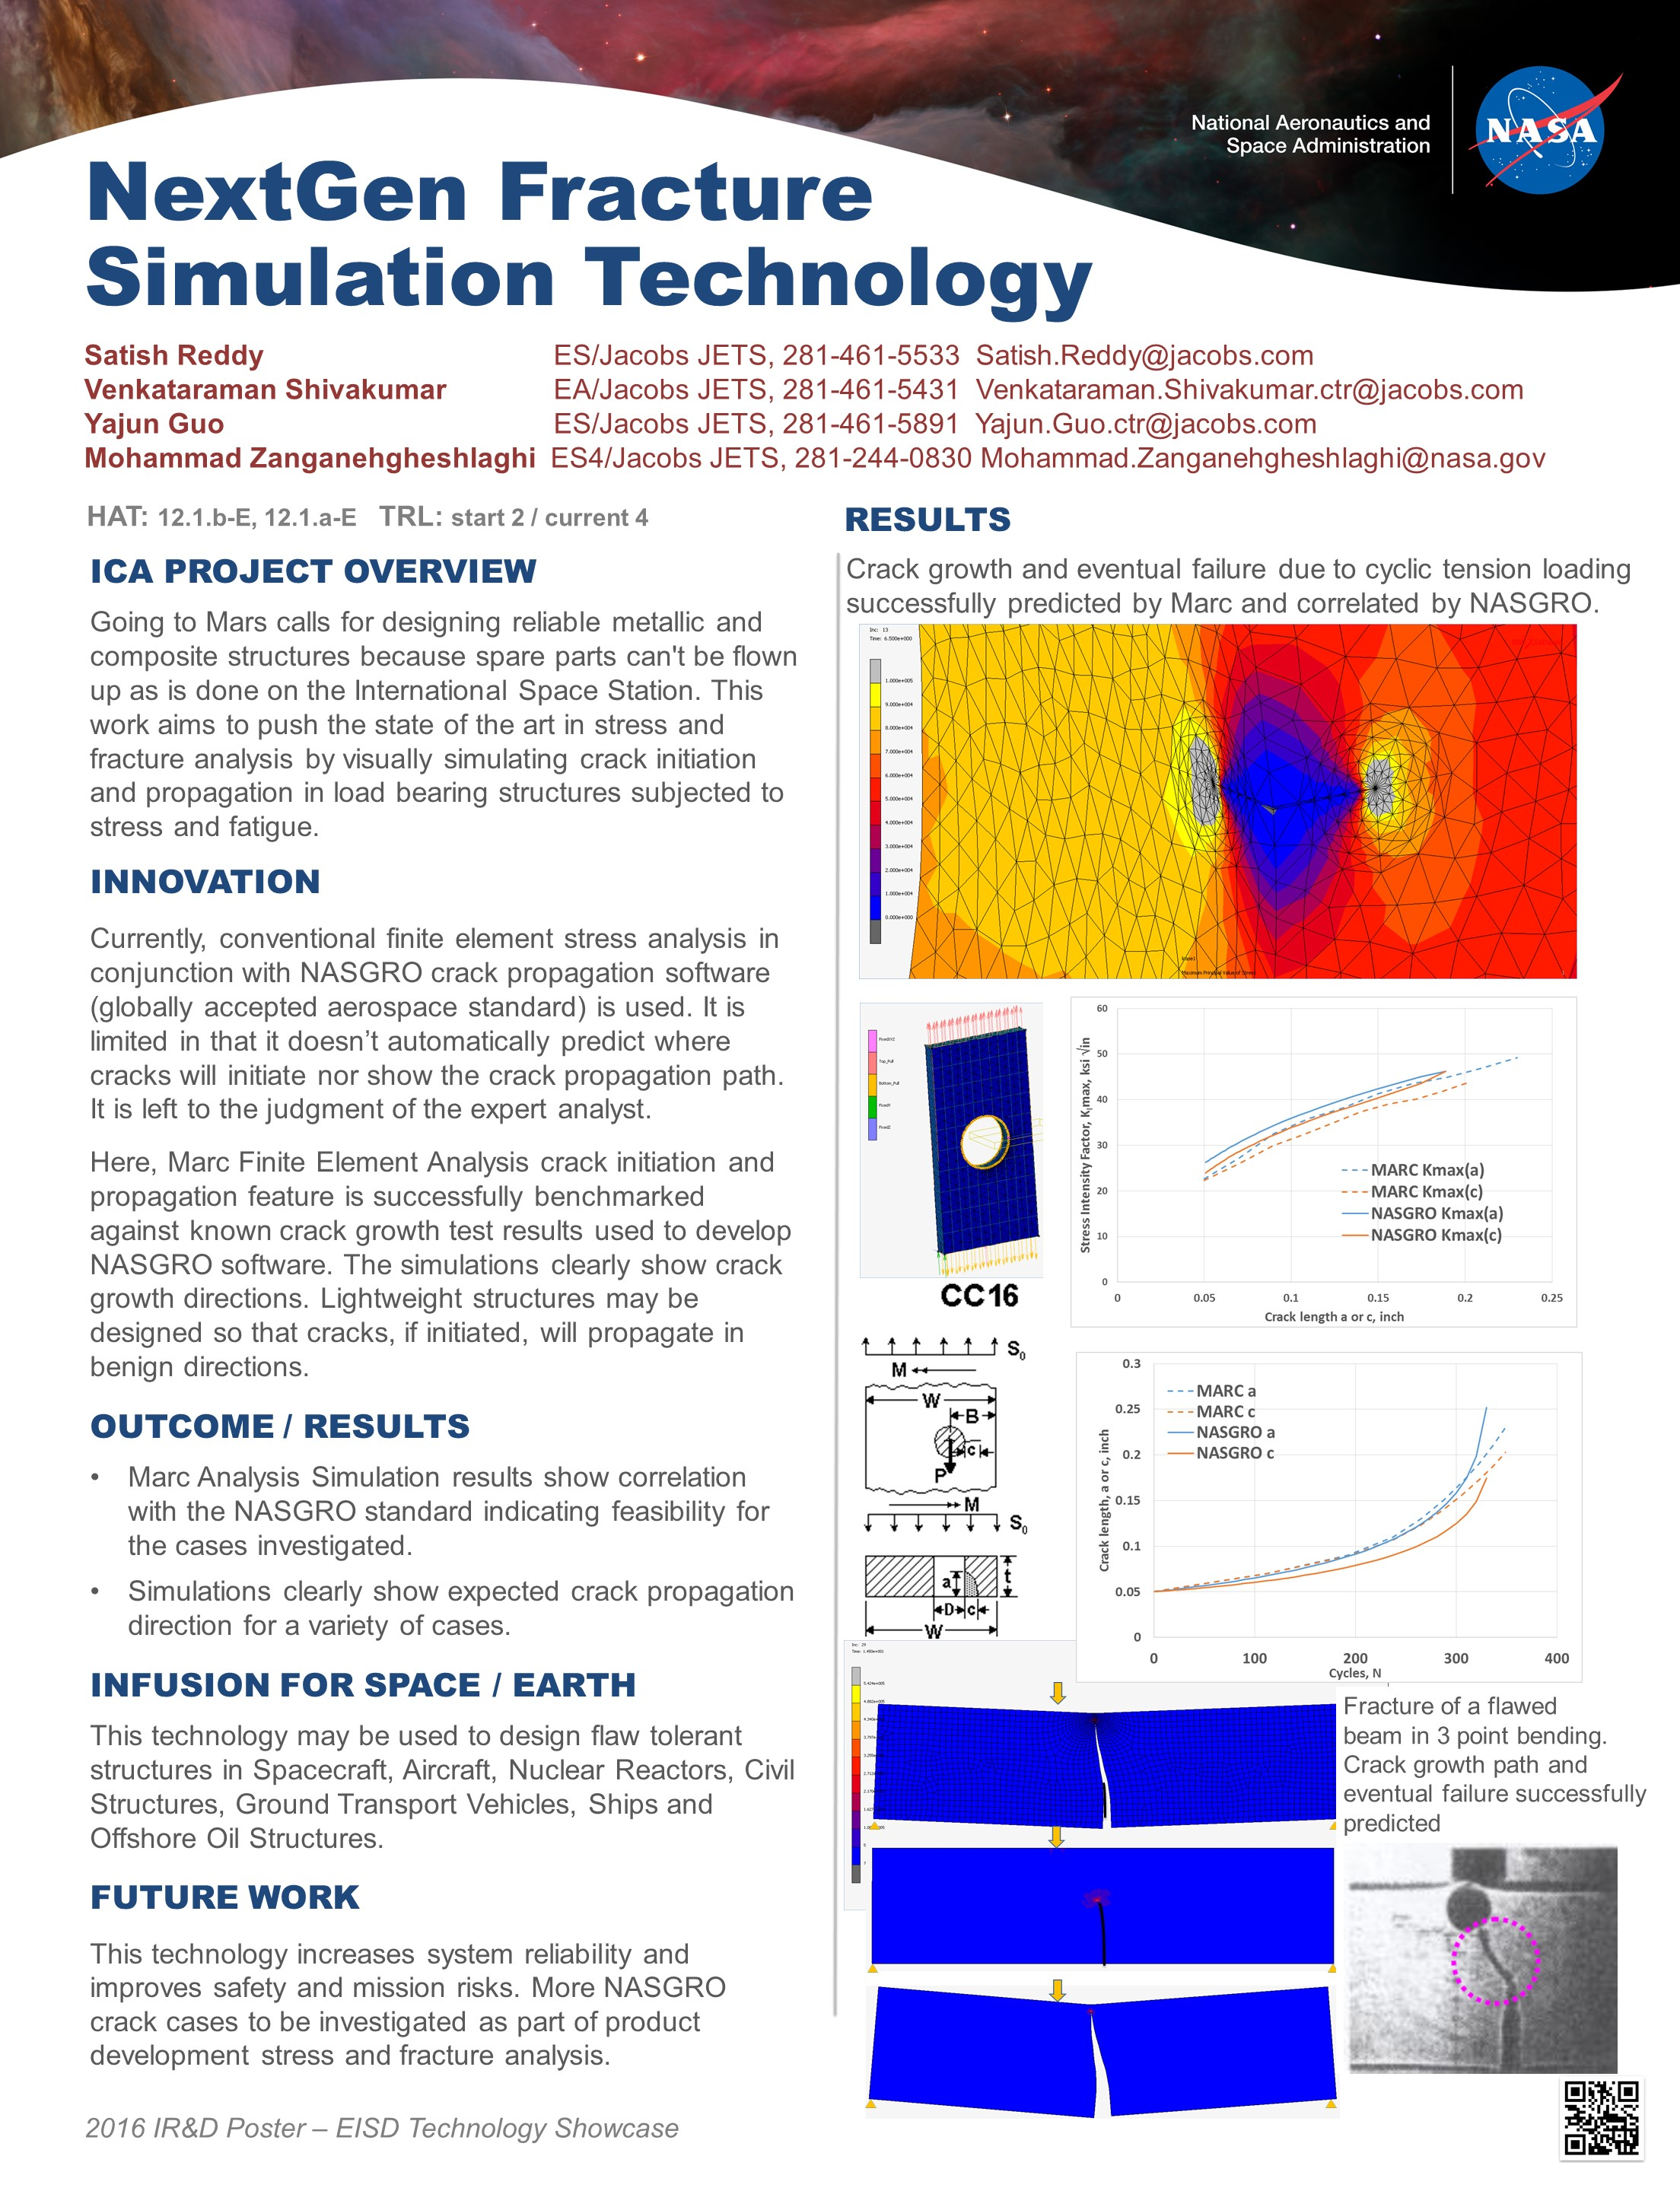 NextGen Stress & Fracture for Lightweight Structures Technology Showcase 2016 Project Poster